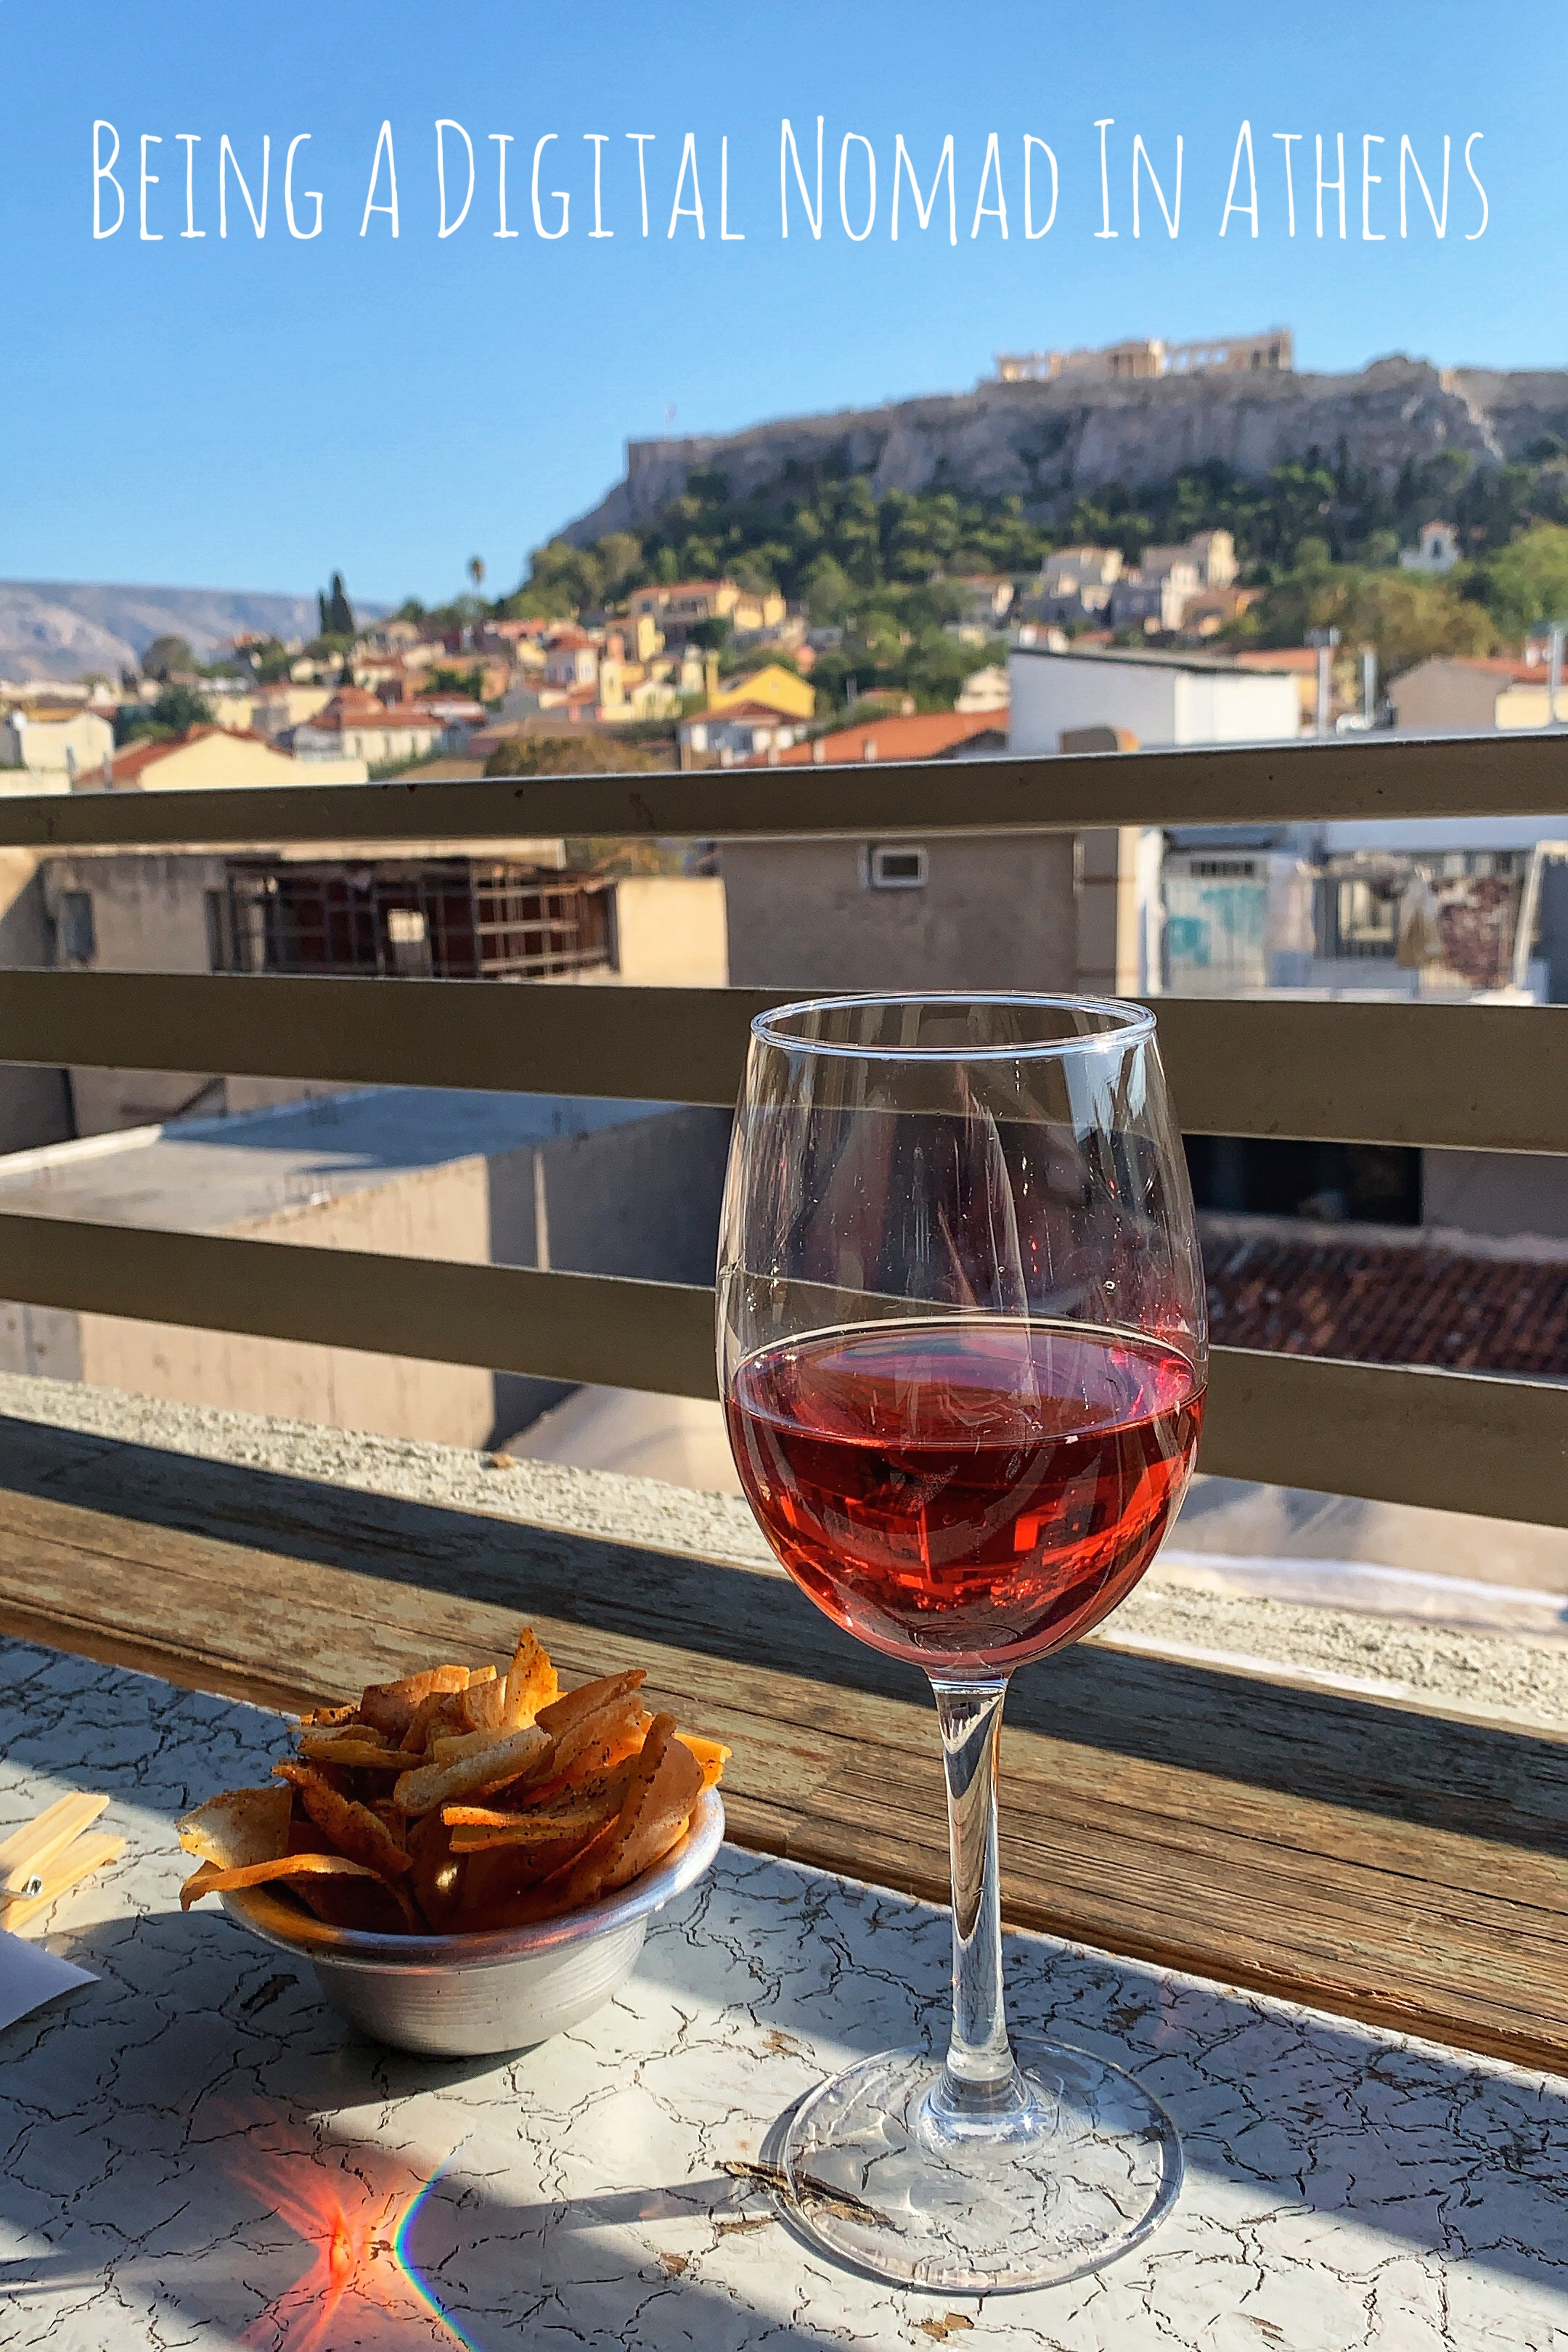 Drinking wine near the Acropolis in Athens Greece